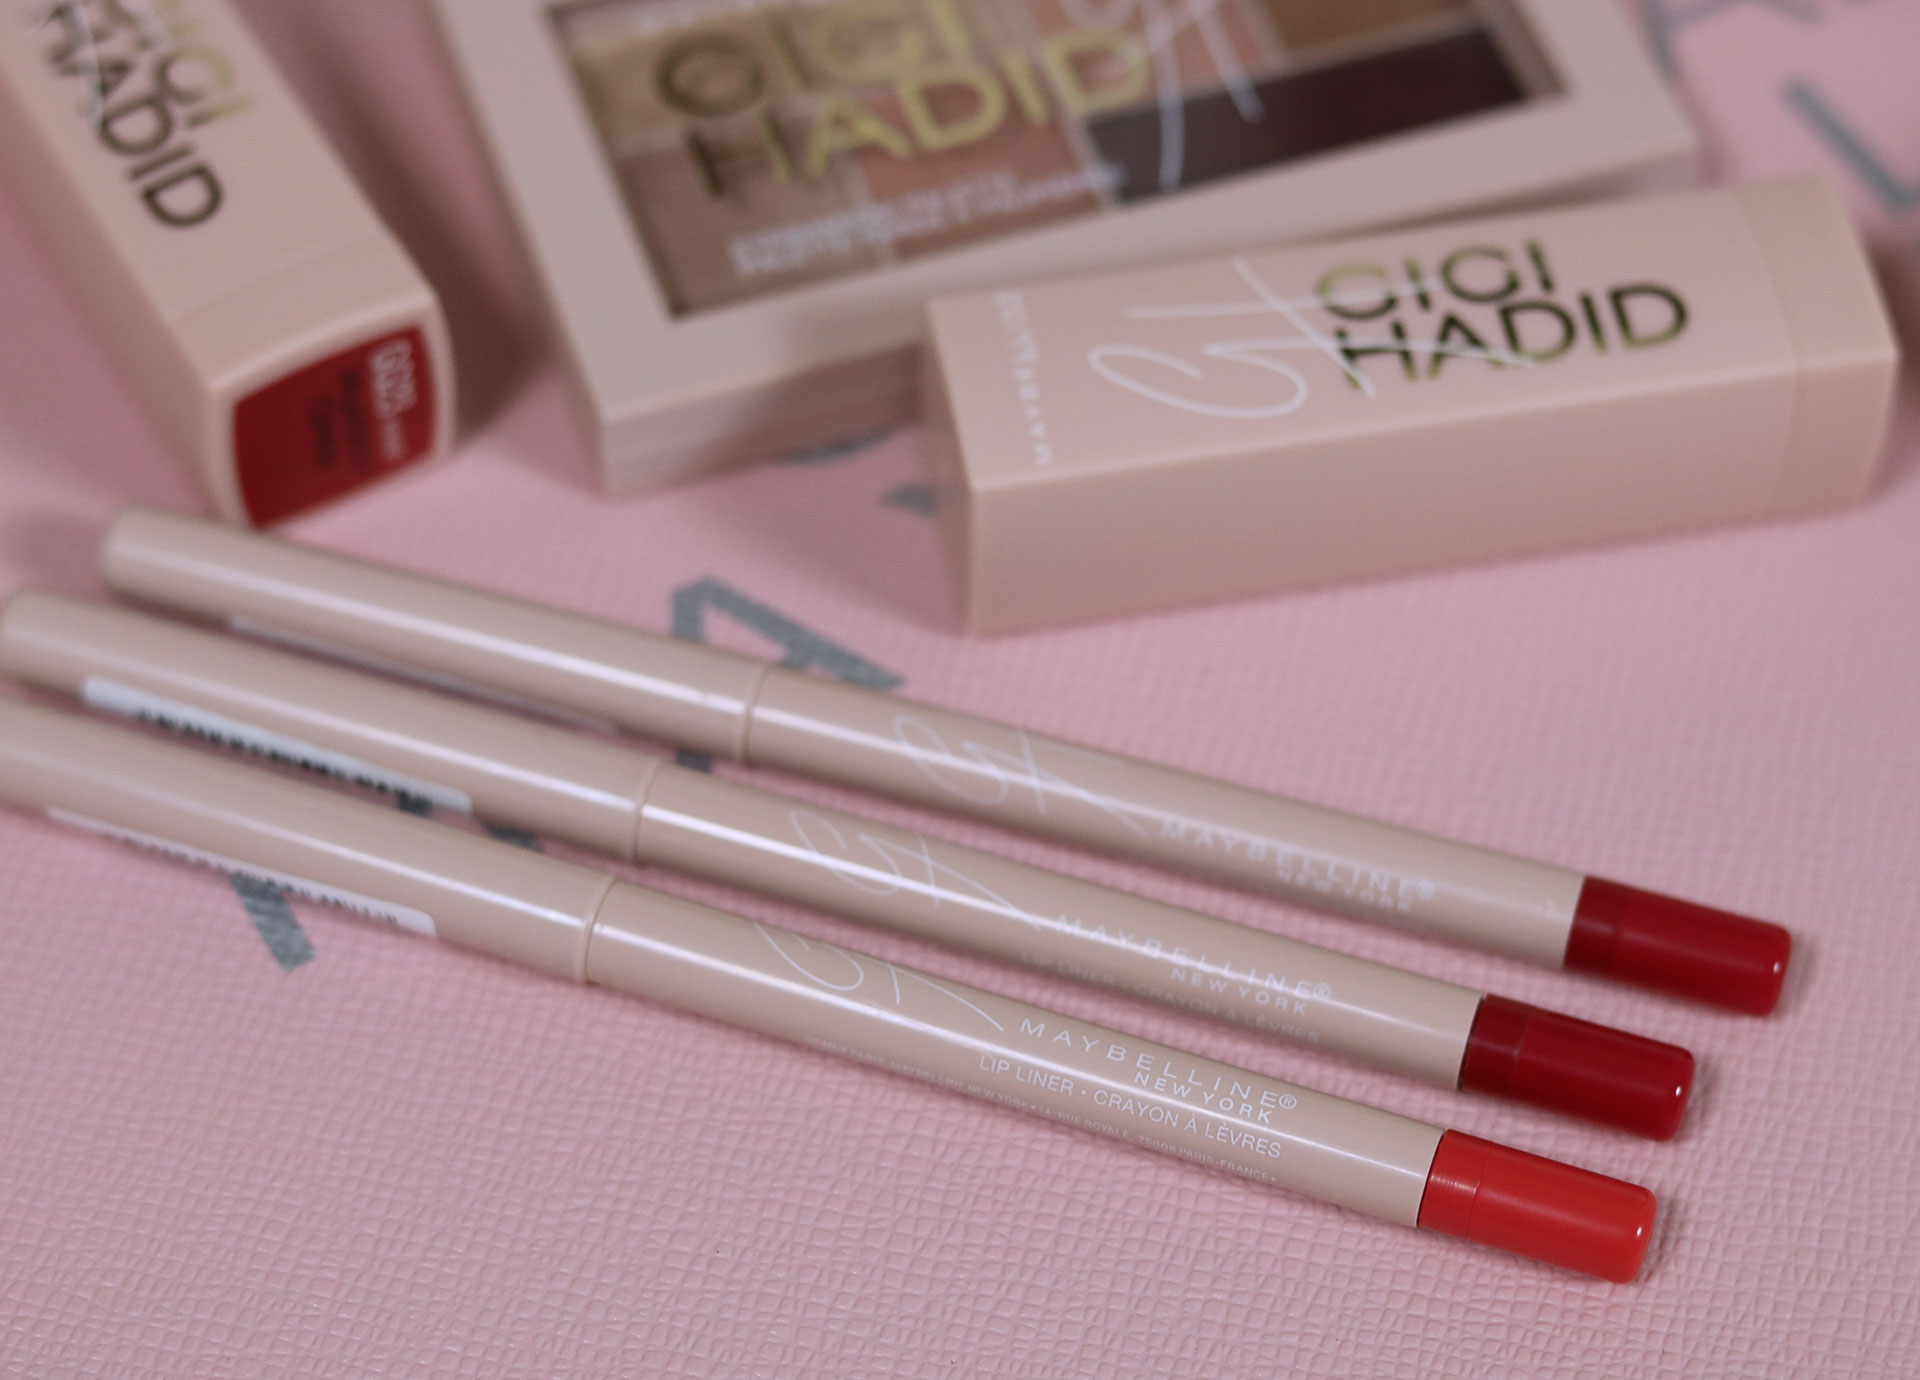 35 Gigi Hadid Maybelline Collection Review Swatches Photos - Gen-zel She Sings Beauty